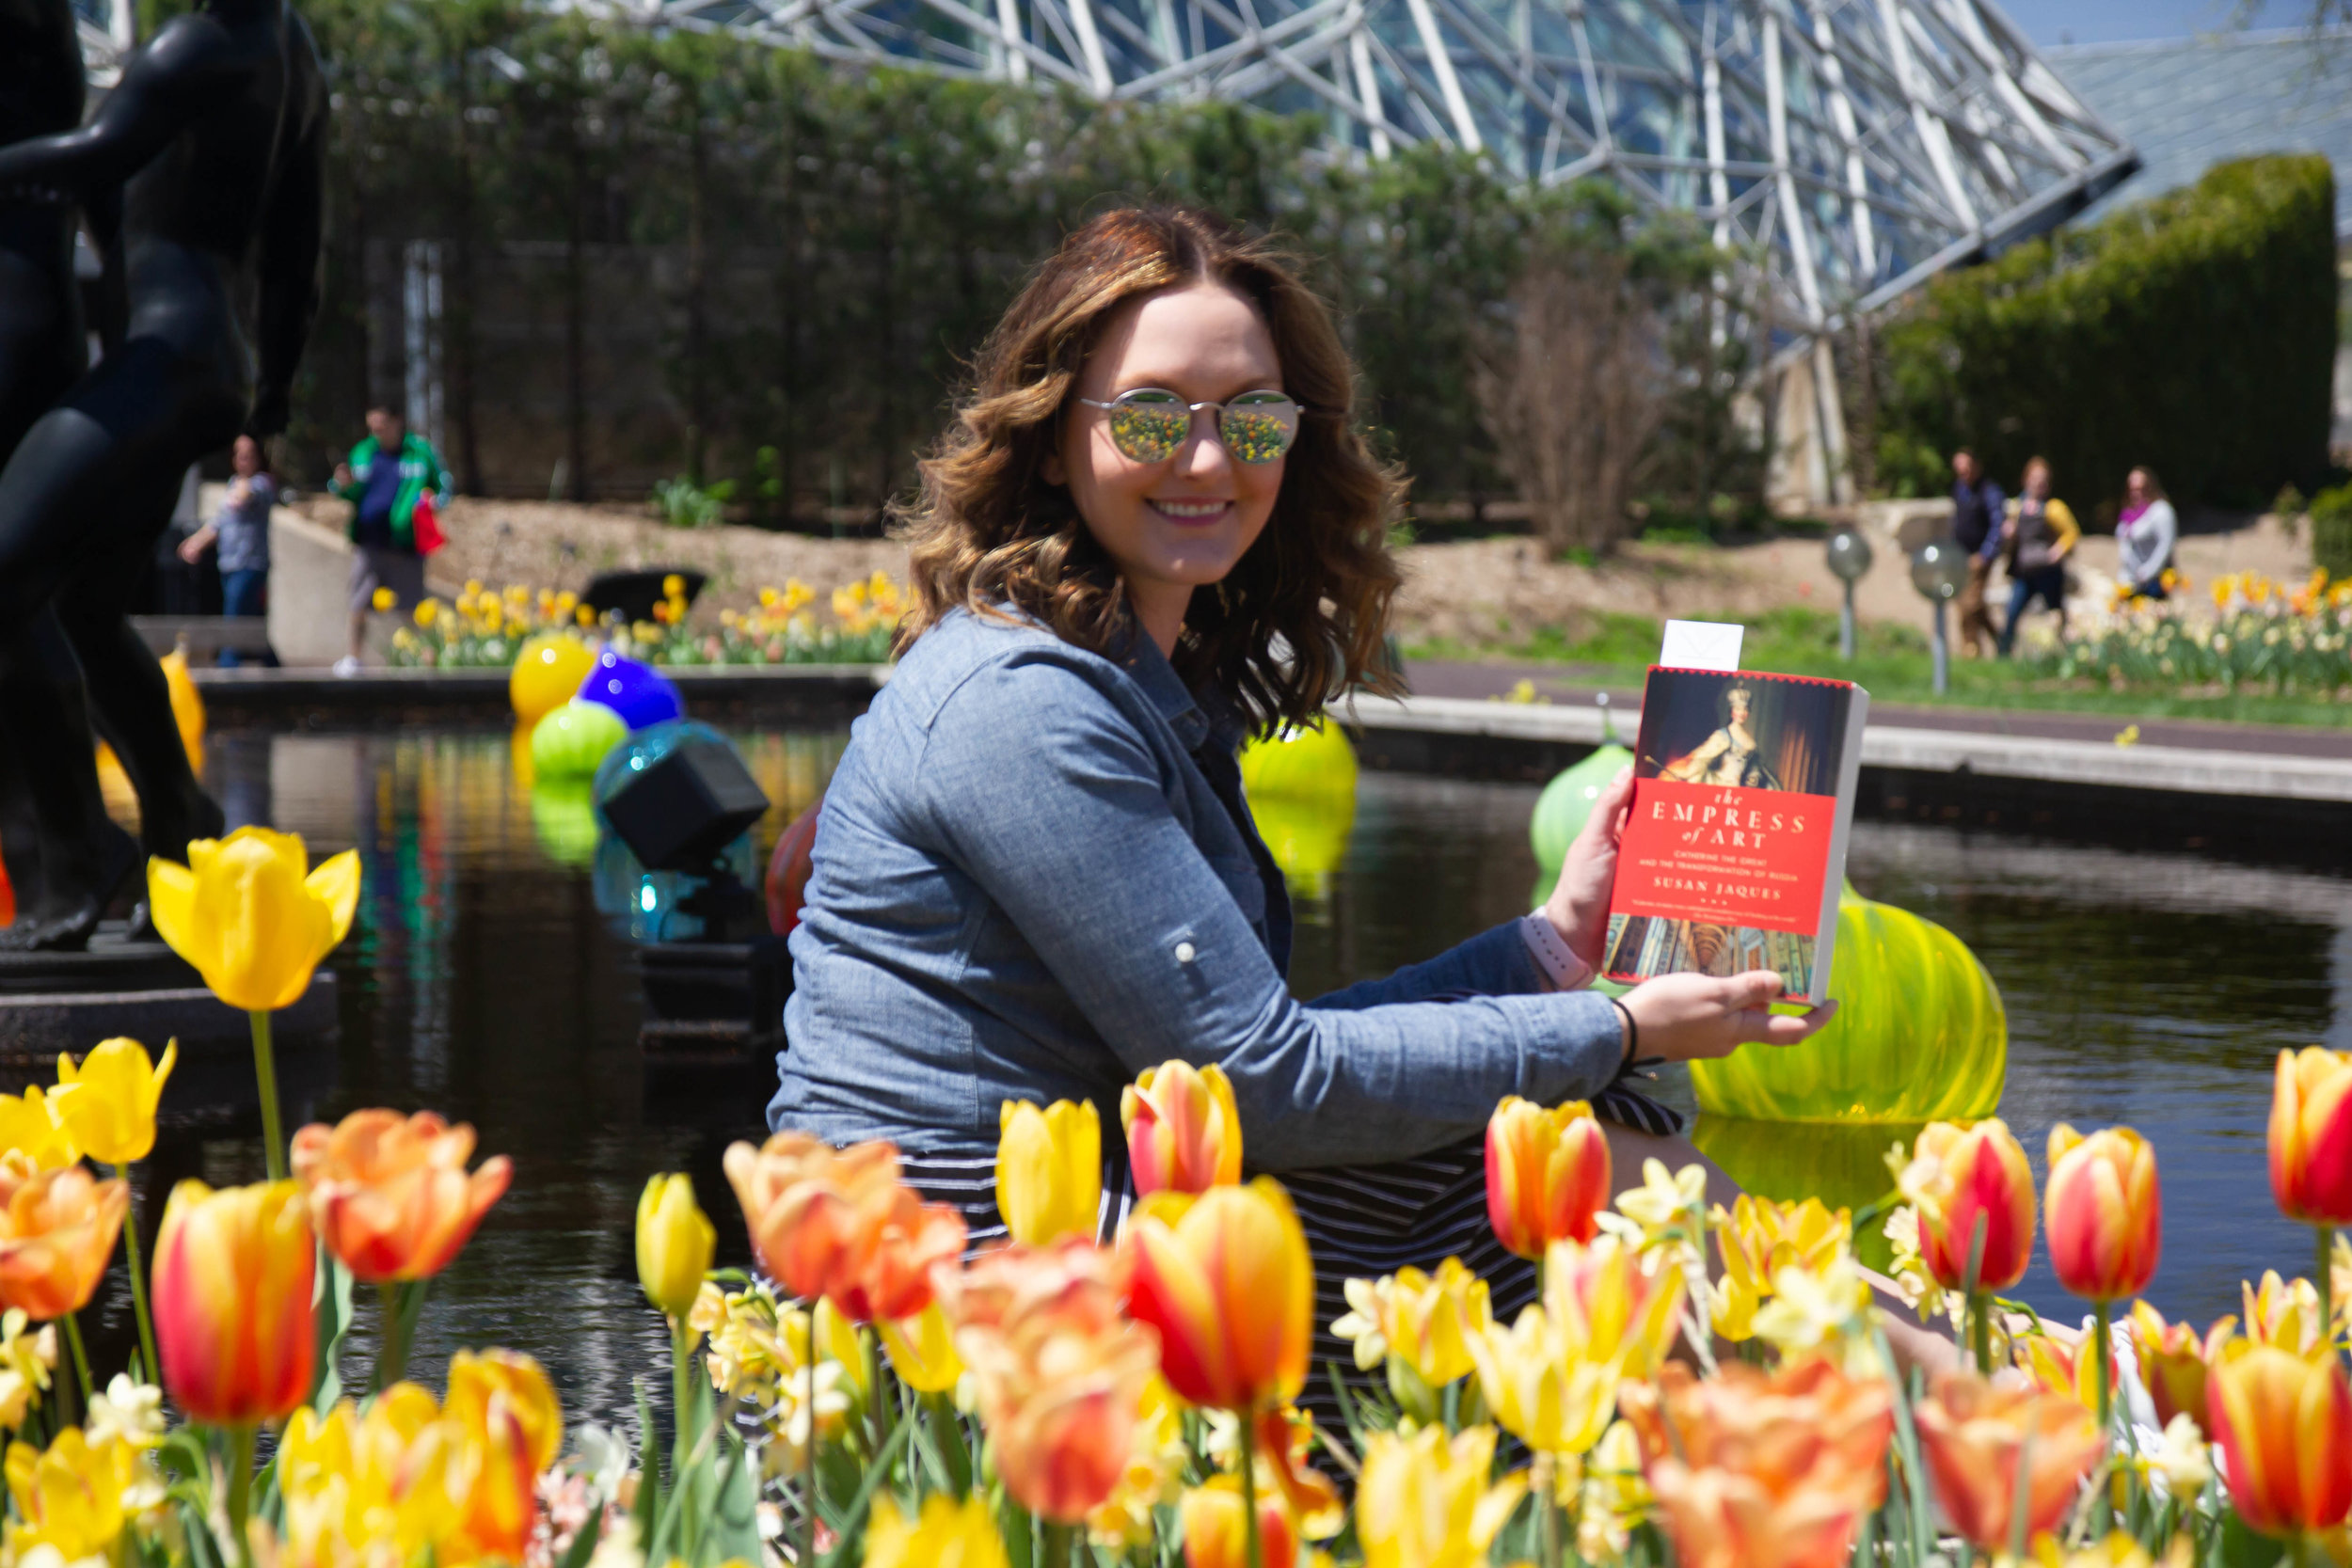 Reading The Empress of Art by Susan Jaques at the Missouri Botanical Gardens